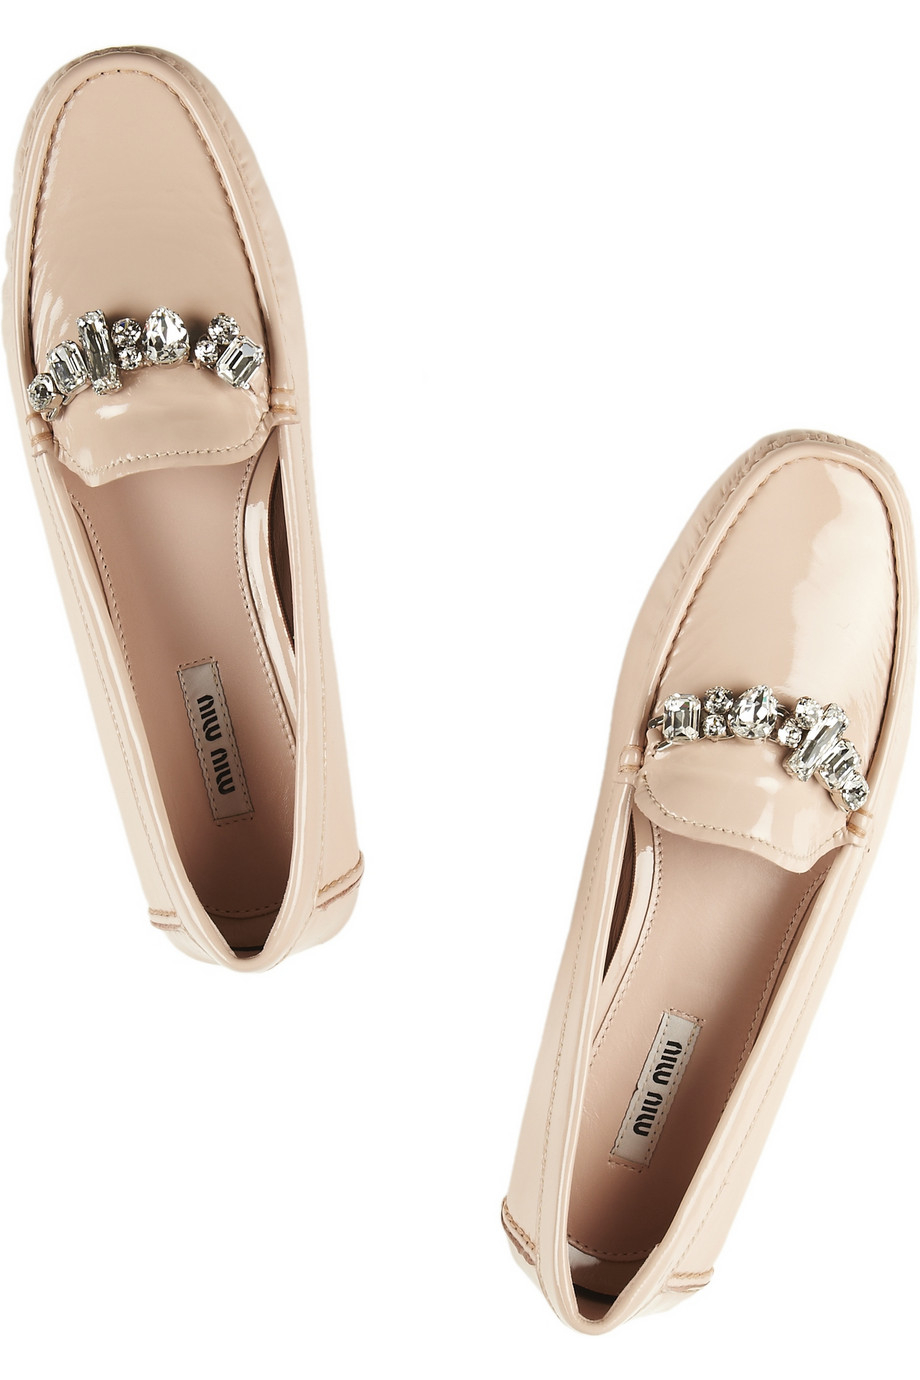 Forever 21 Shoes Flats 2014